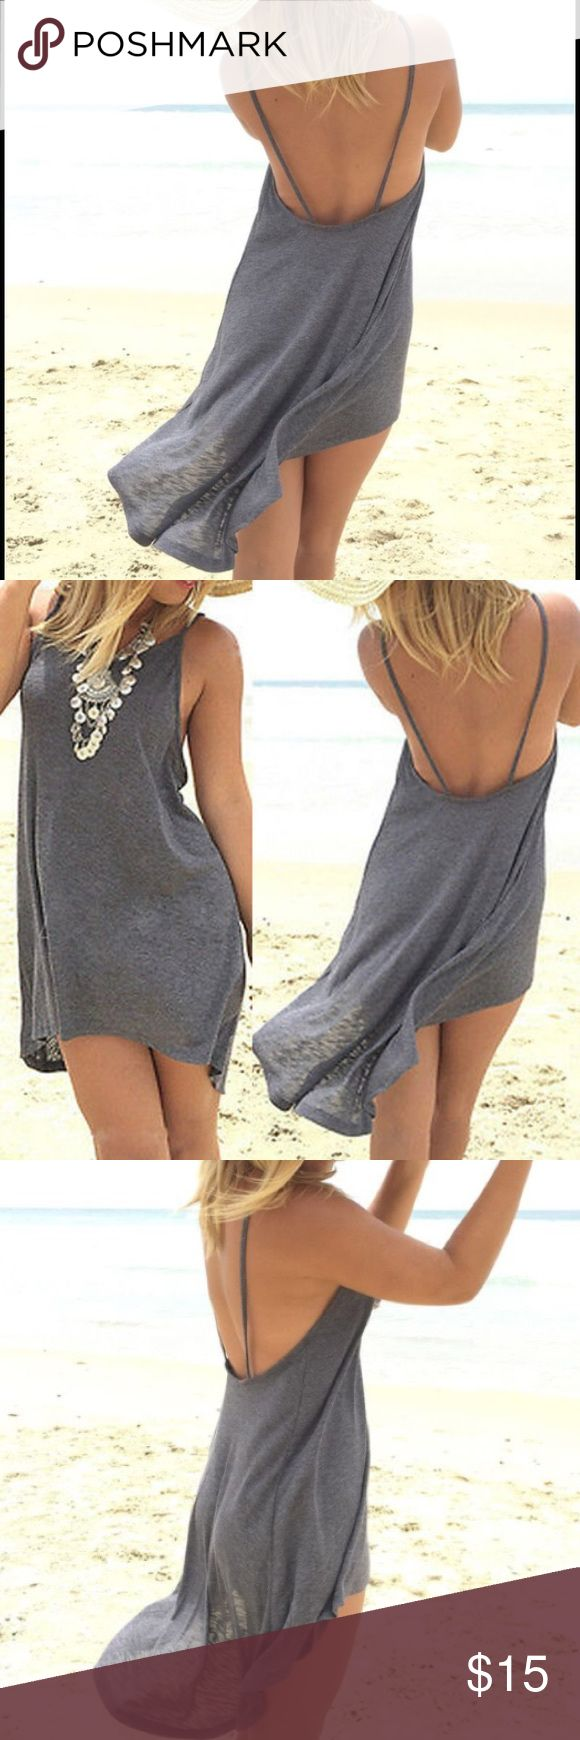 🆕JUST IN! HIGH LOW GREY MINI SUNDRESS With its comfy cotton feel and spandex for stretch these run one size up for a looser fit to pair with your favorite bikini! For a perfect tight fit go down a size.  Small fits 4-6,medium fits 6-8, large fits 10-12 Dresses High Low